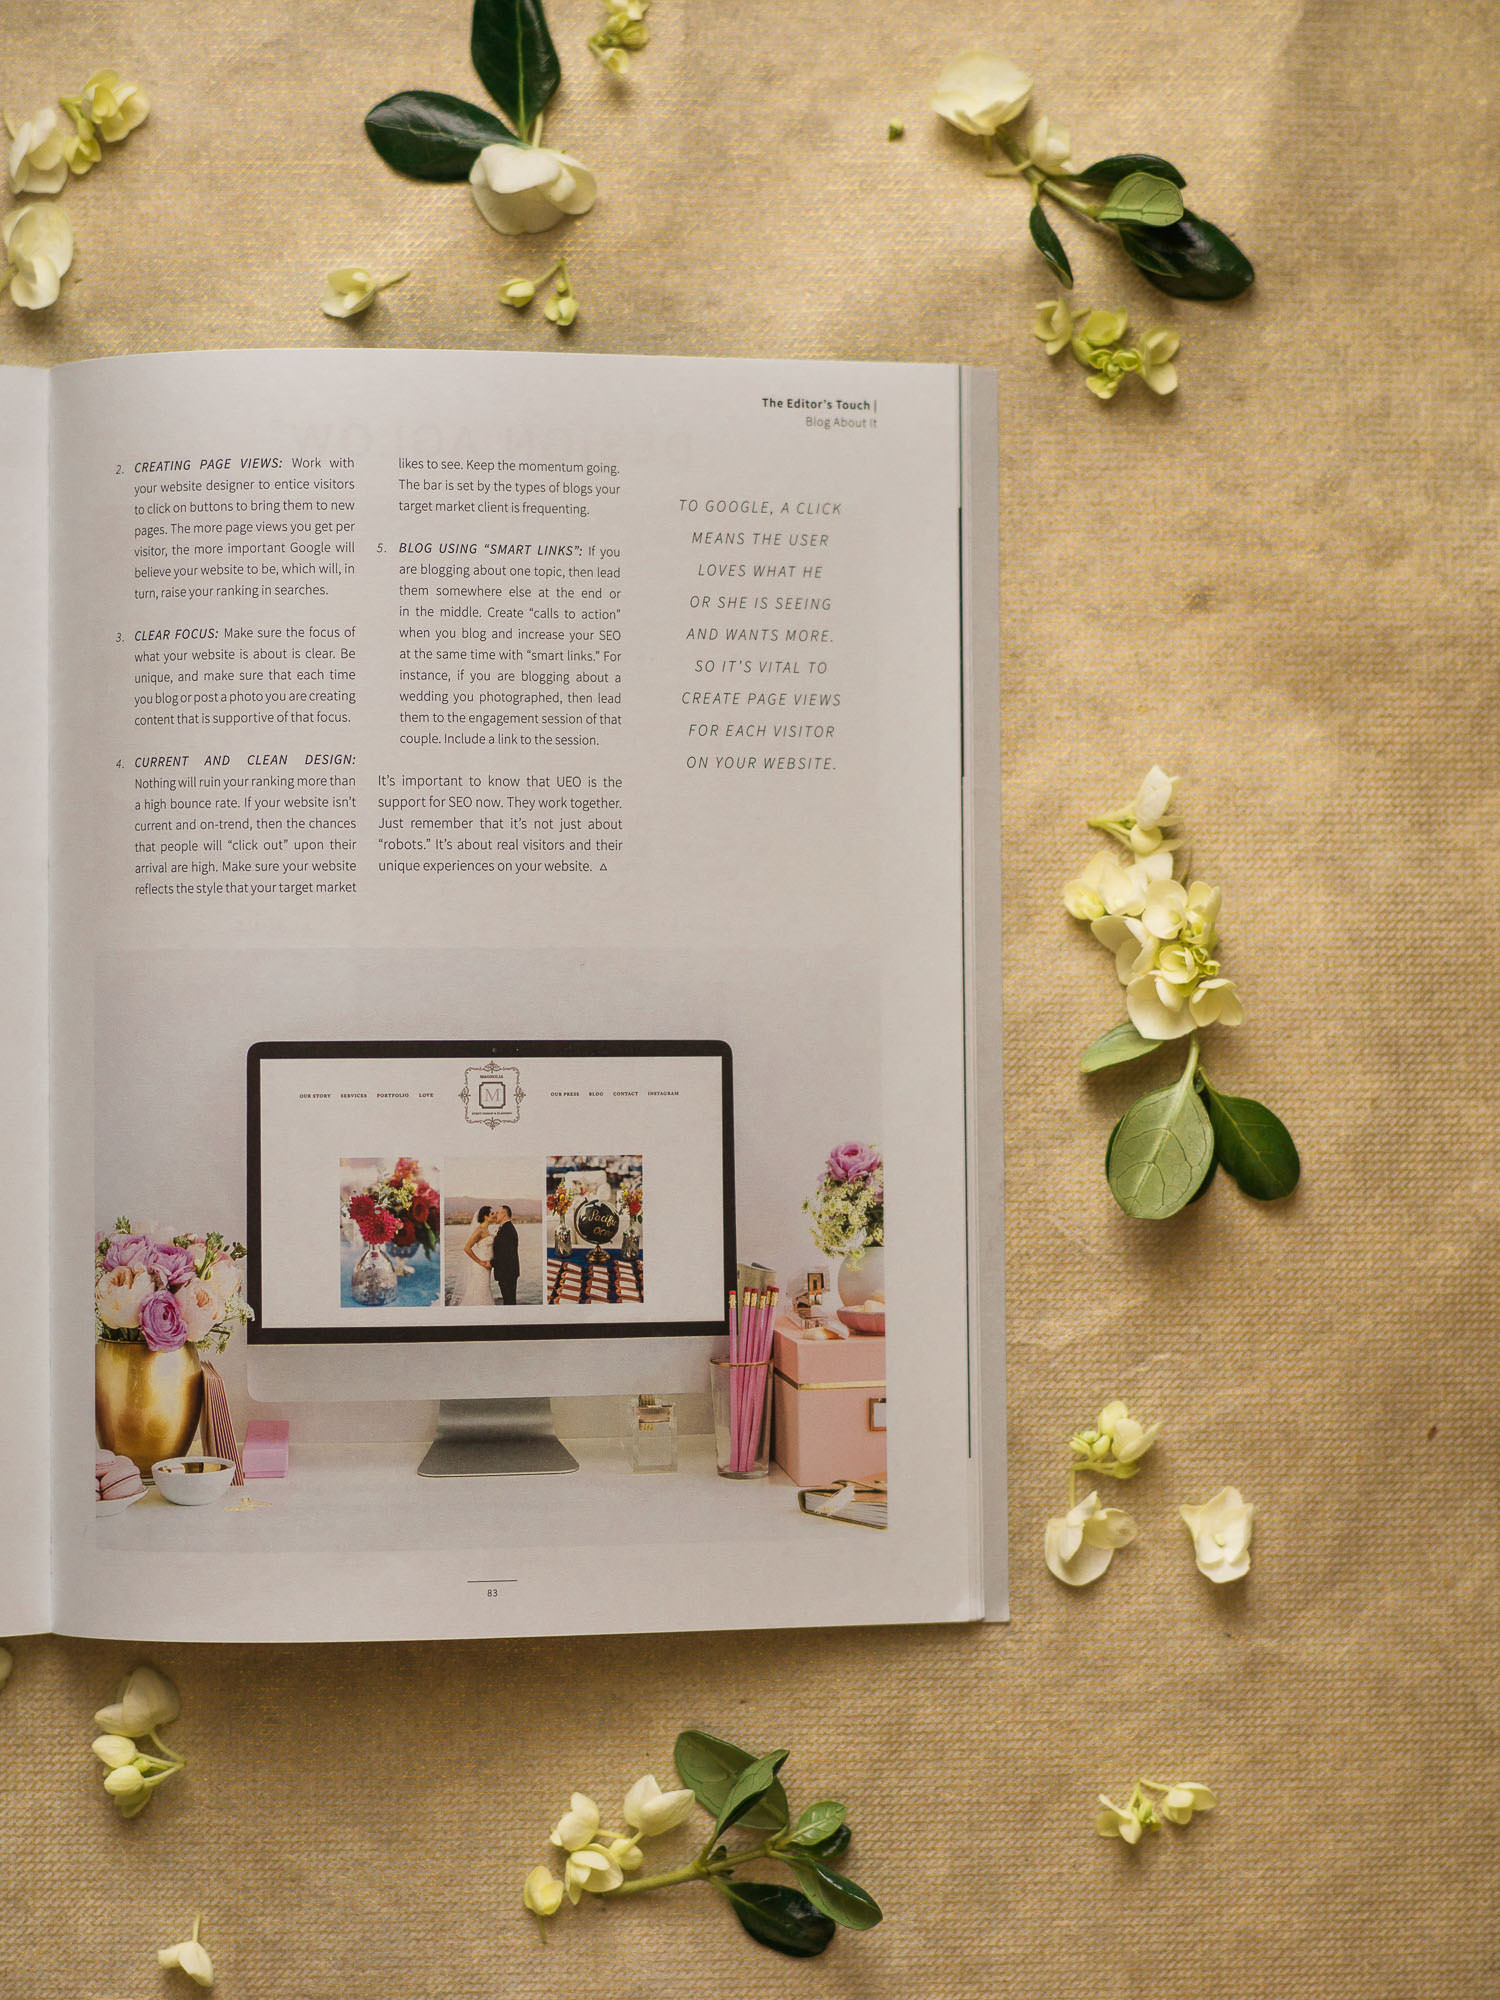 theeditorstouch.com | Wedding Industry Expert | Featured in AGLOW Magazine | Heather Sharpe of The Editor's Touch